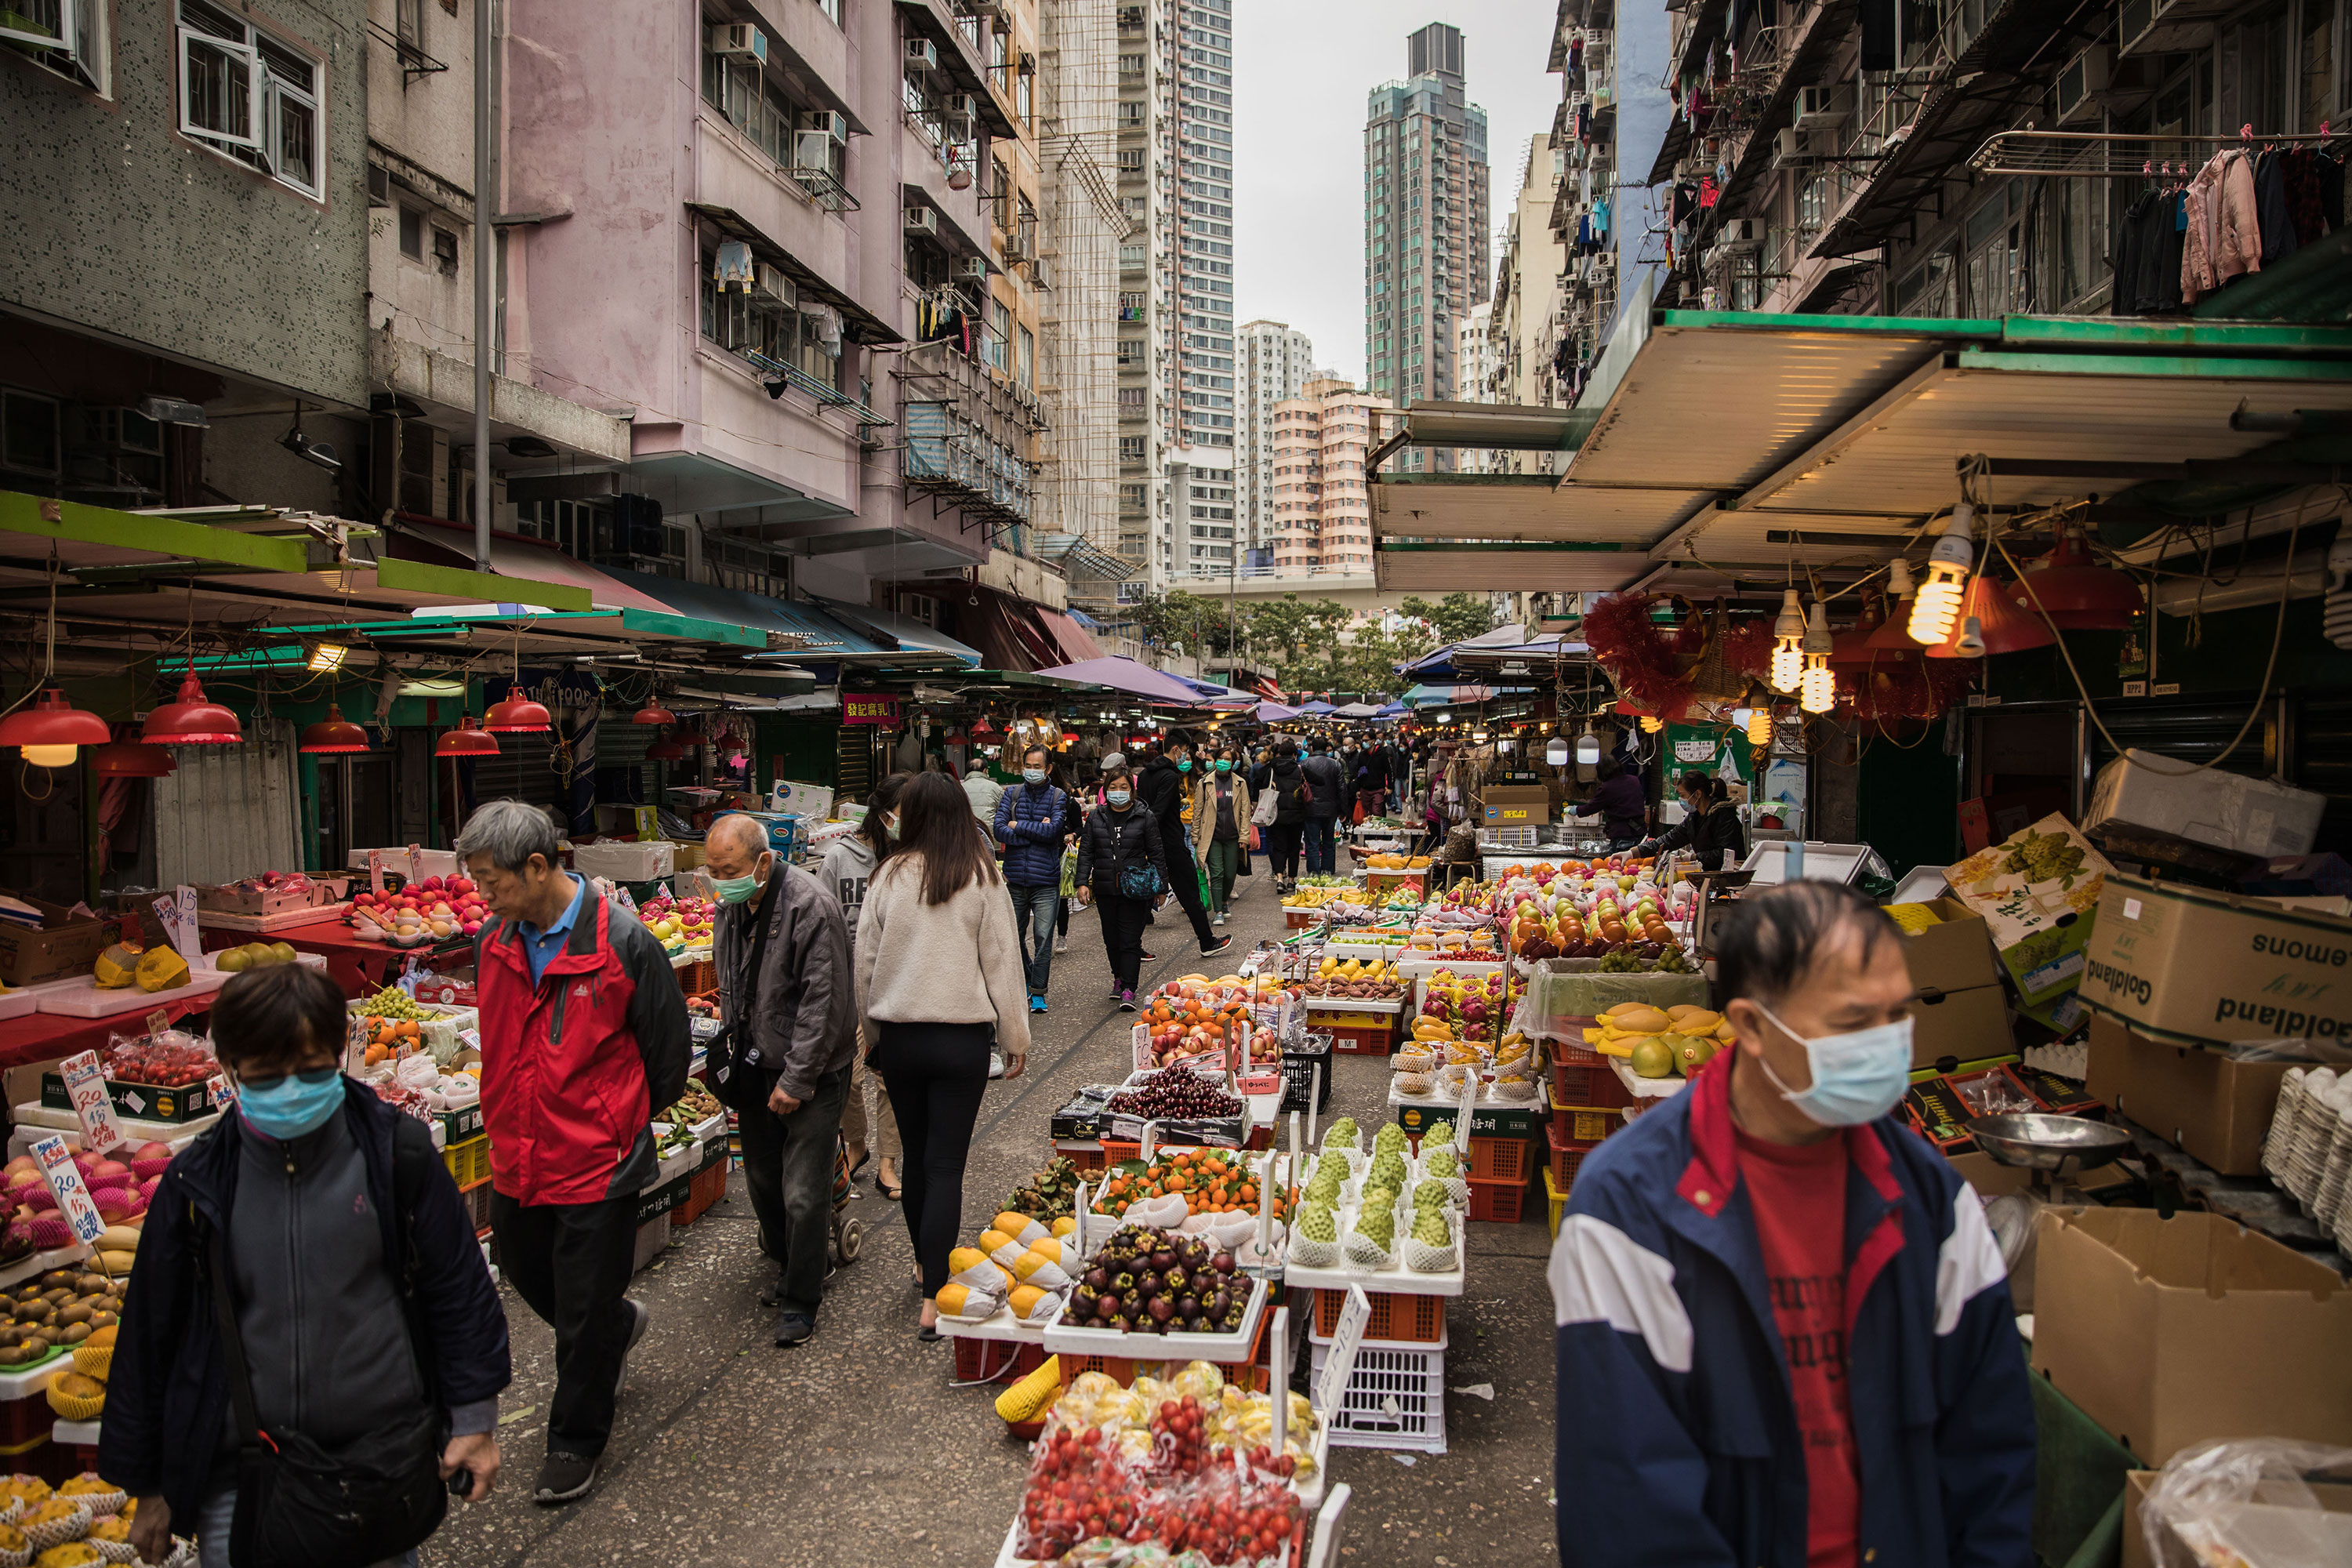 Hong Kong is giving 7 million people $1,200 in cash to boost its recession-hit economy